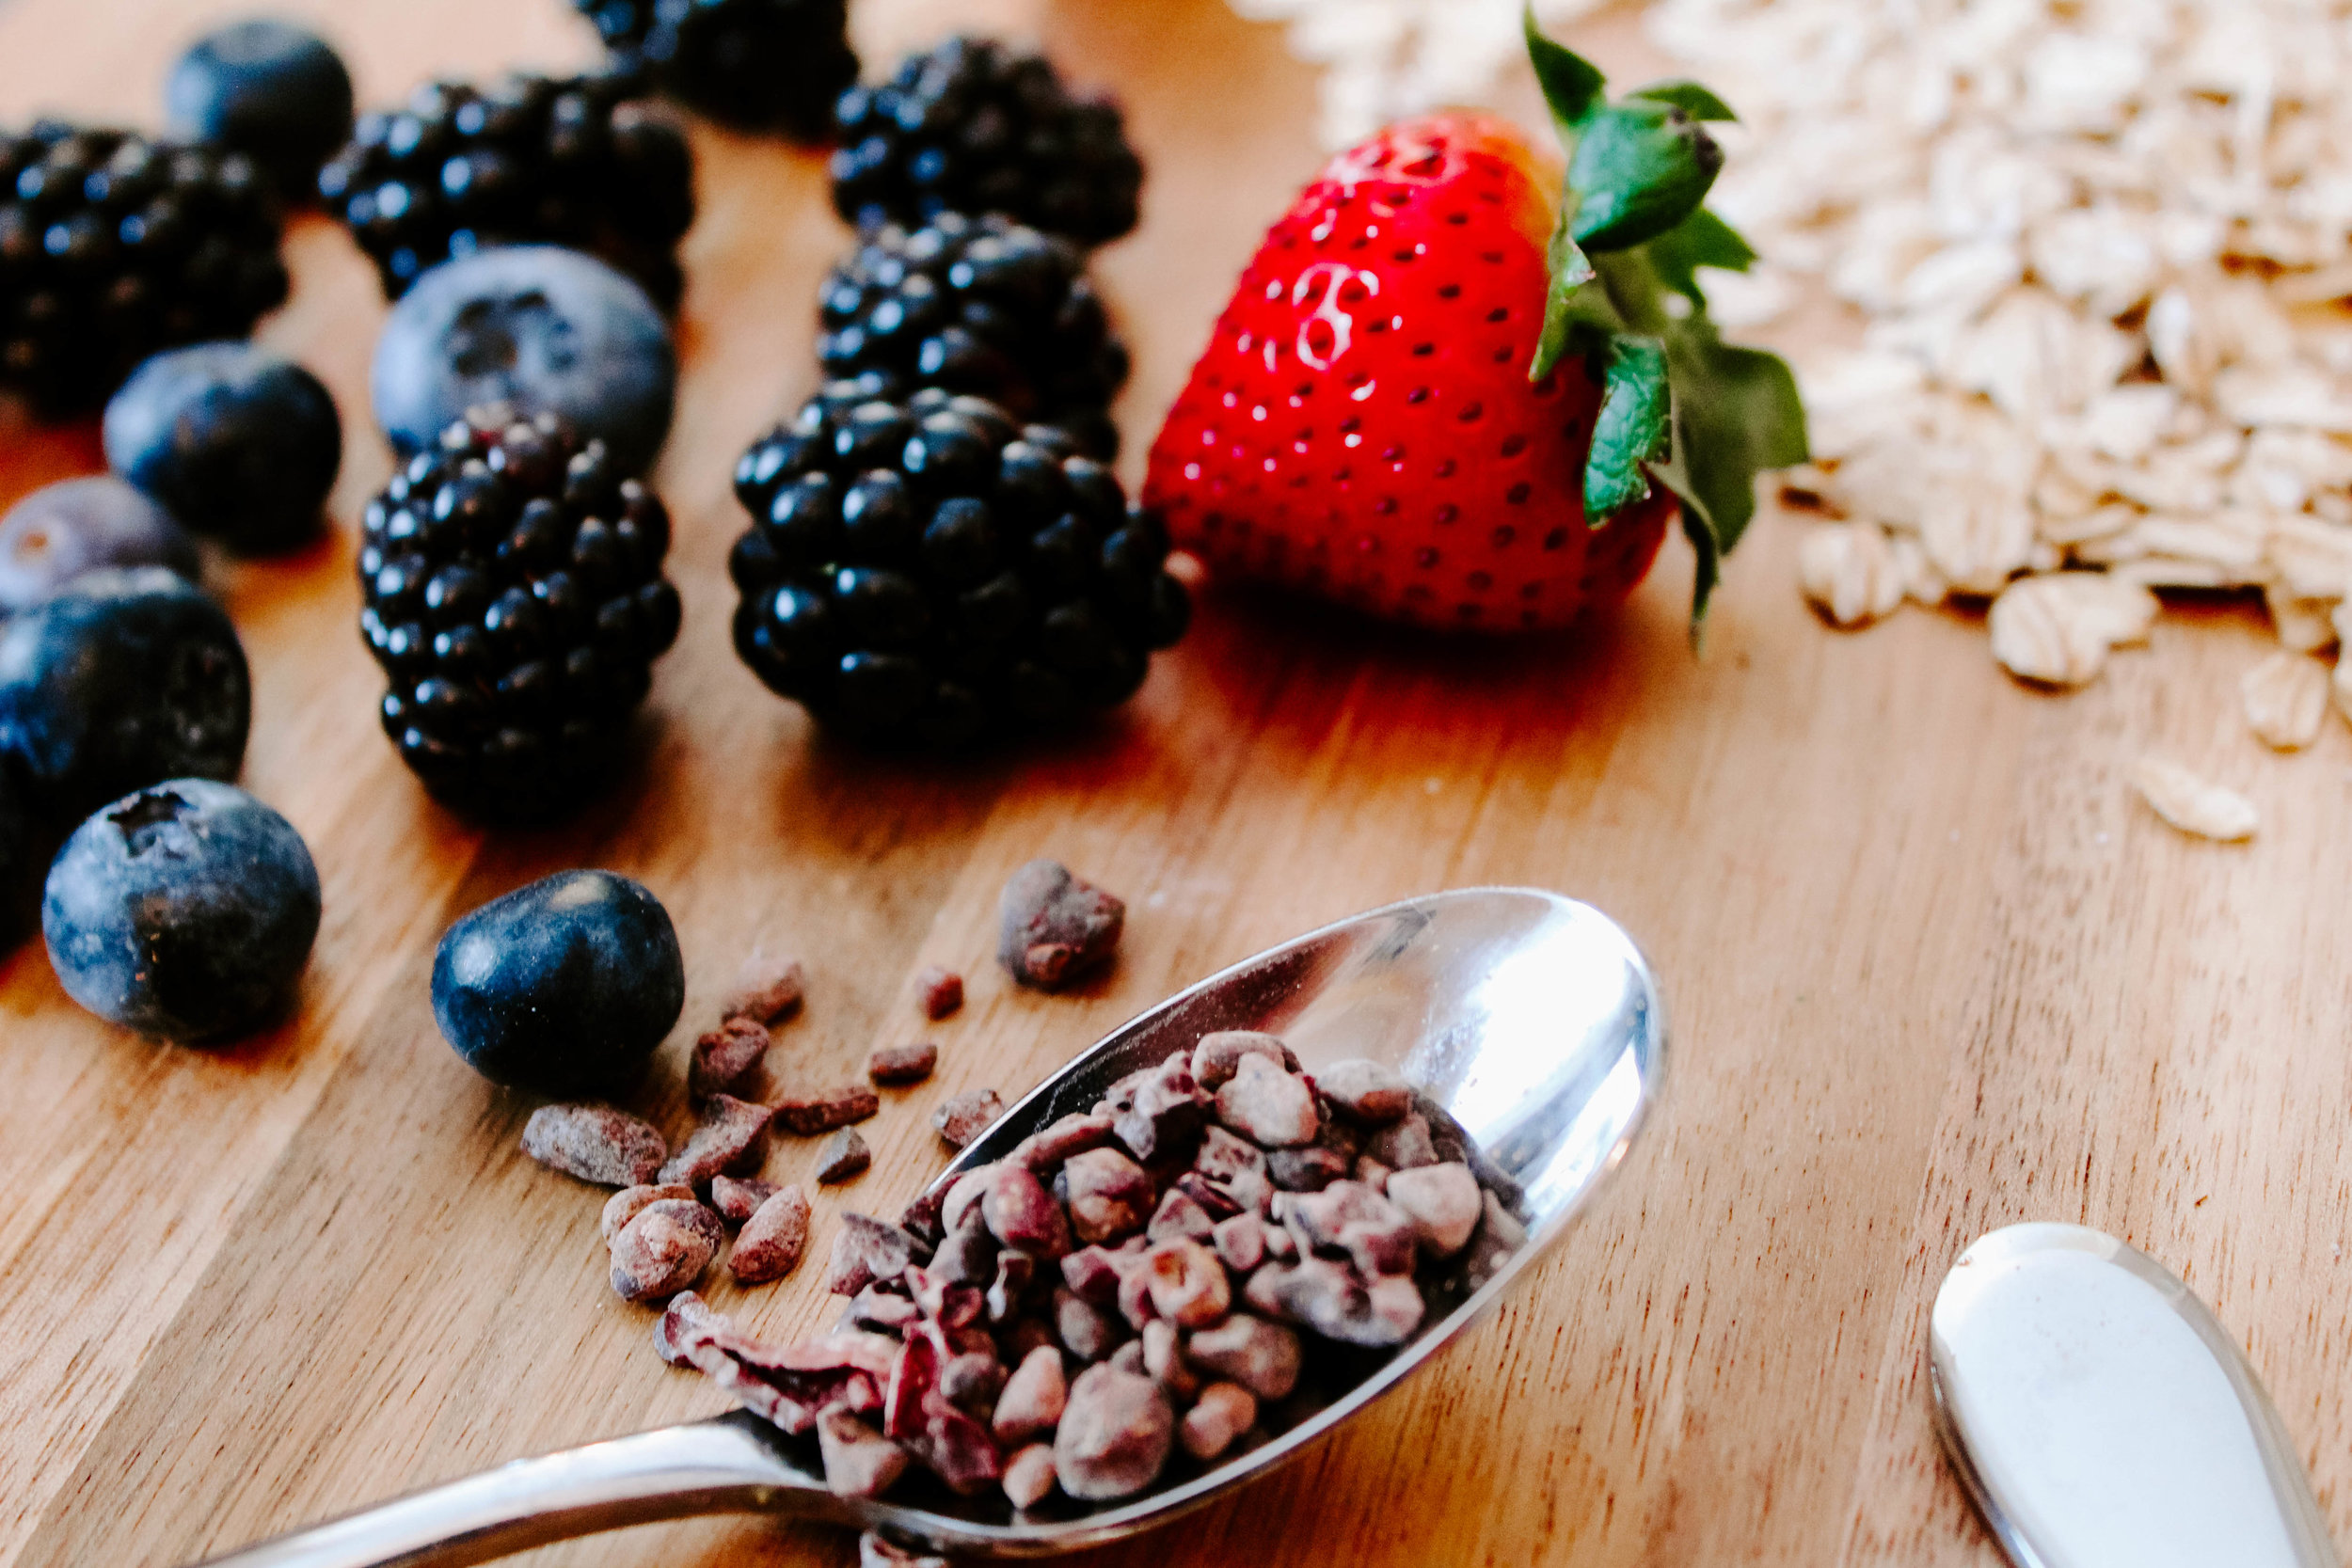 Antioxidant rich blueberries, blackberries, strawberries and cacao nibs!